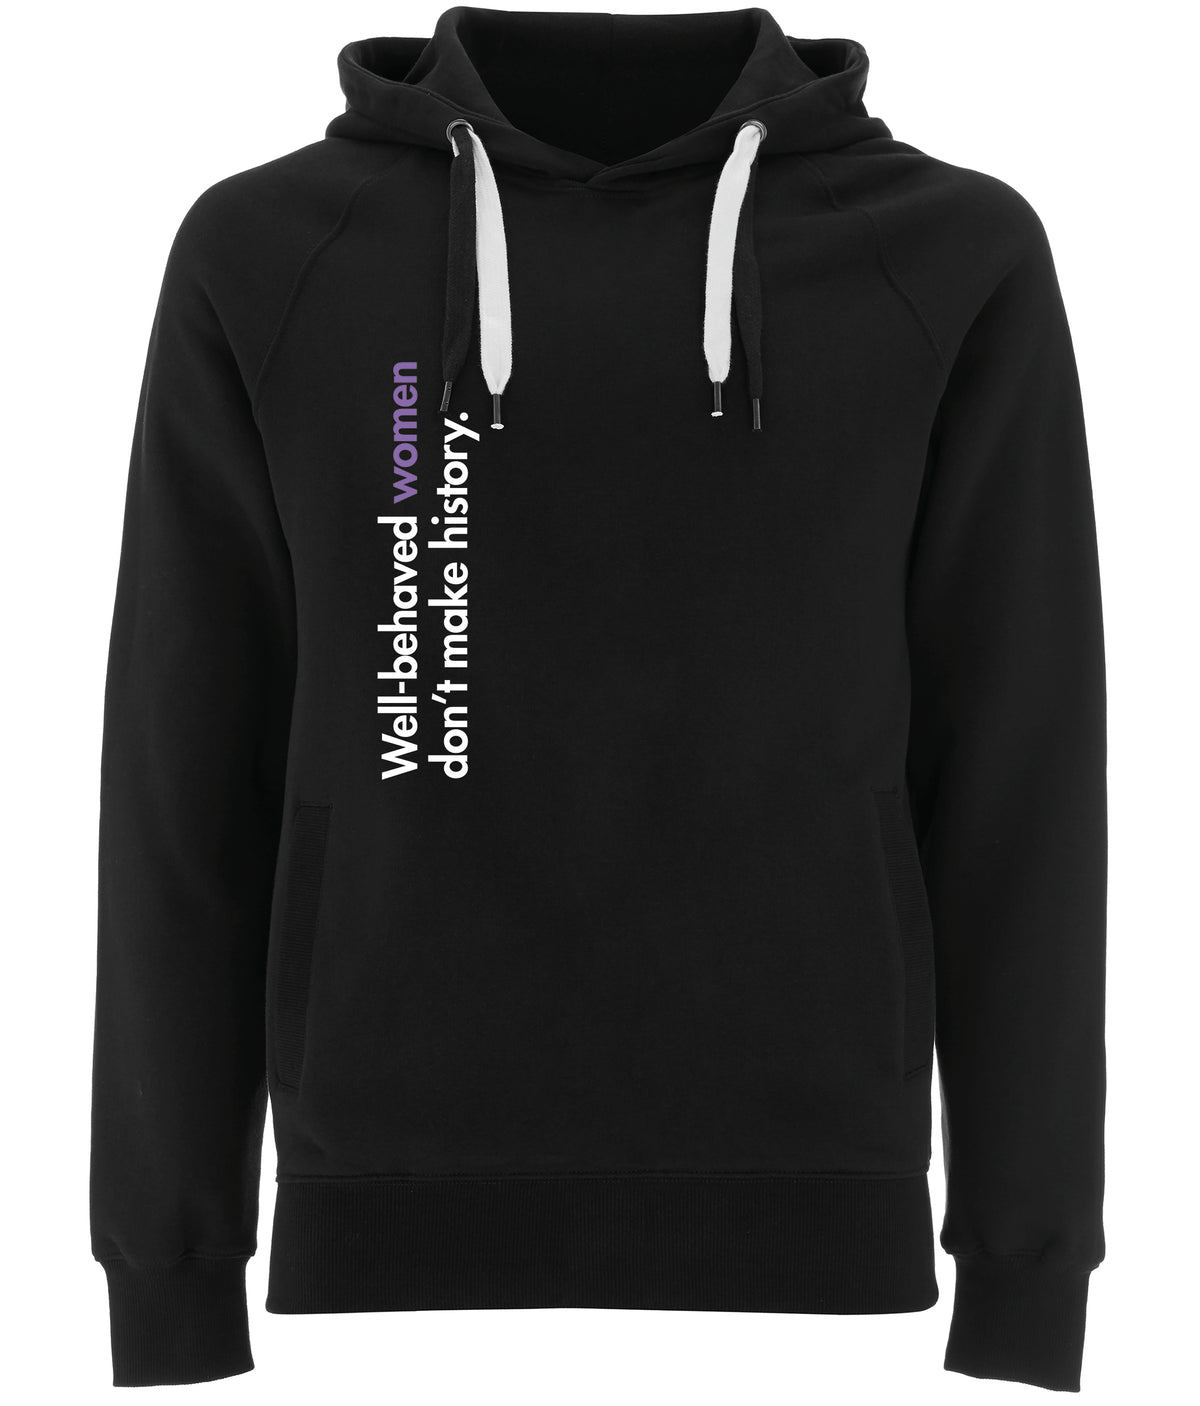 Well Behaved Women Don't Make History Organic Combed Cotton Hoodie Black